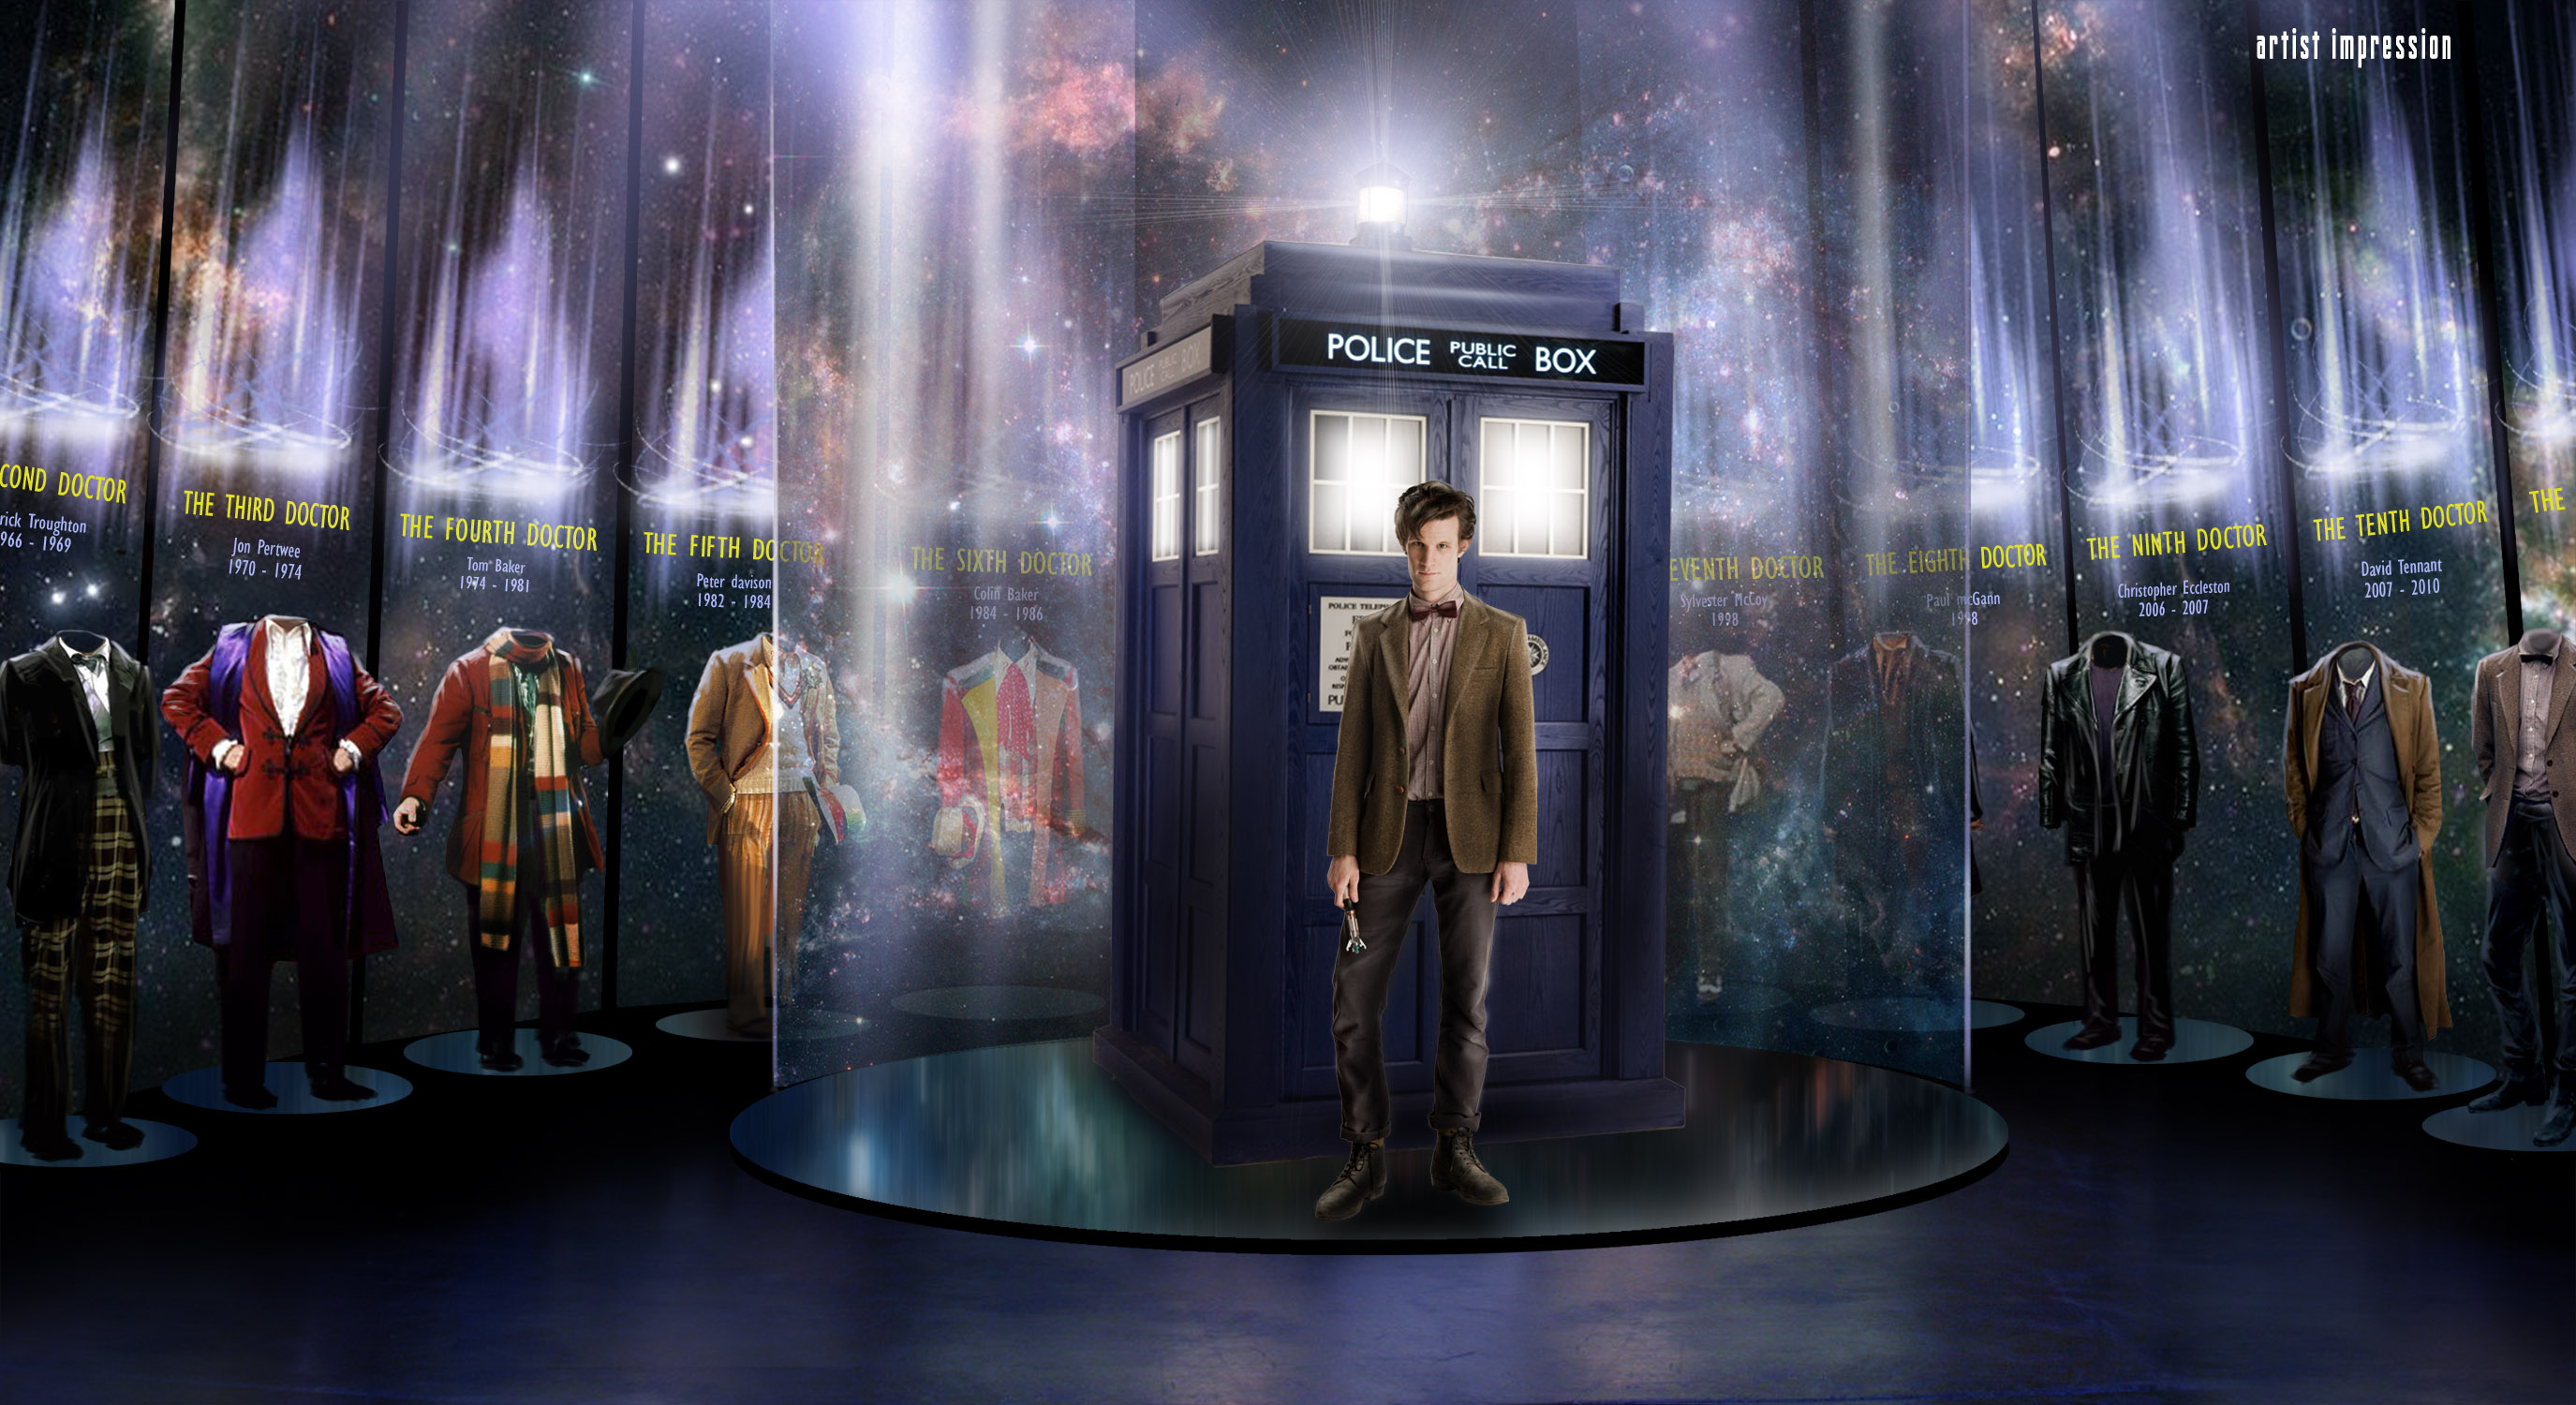 dr who wallpaper 8 - photo #12